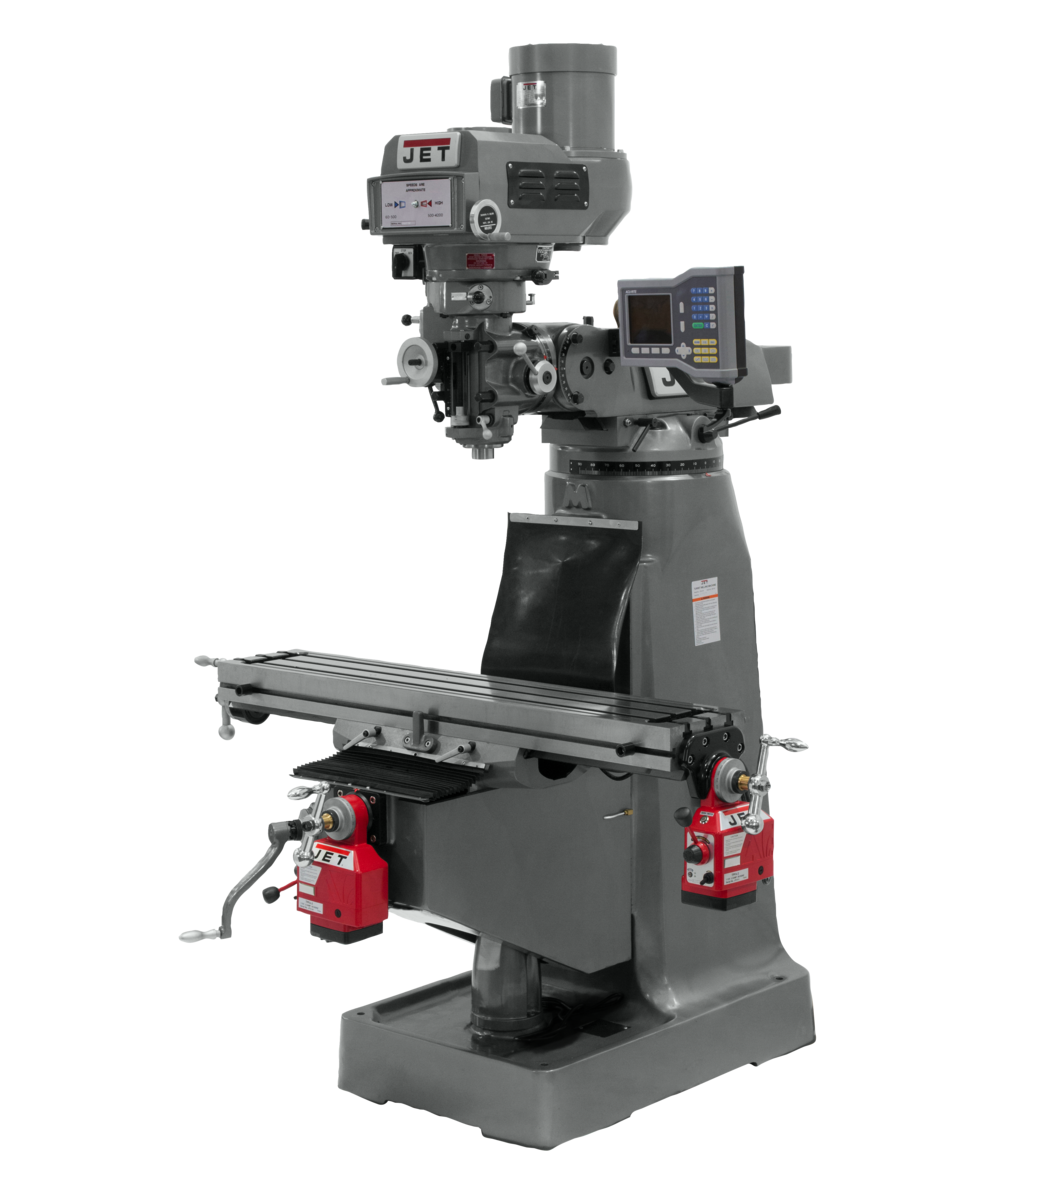 JTM-4VS Mill With ACU-RITE 203 DRO With X and Z-Axis Powerfeeds